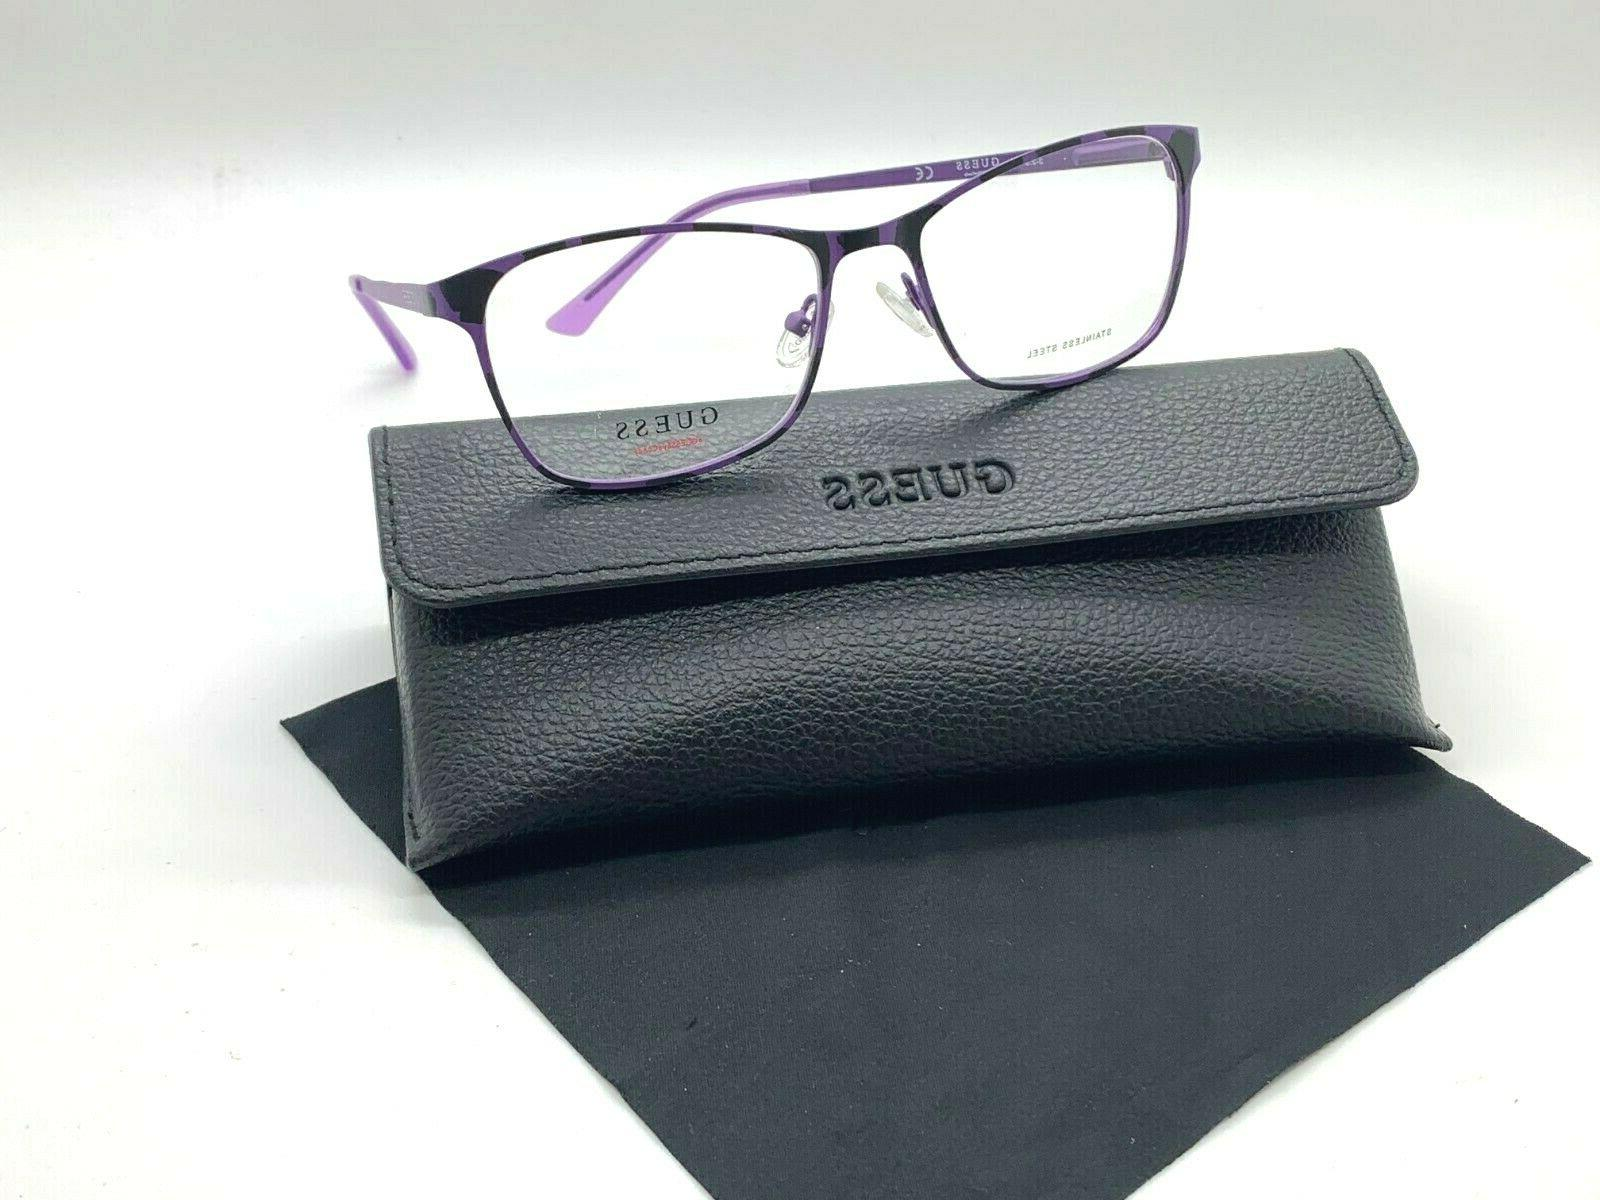 authentic gu3012 082 purple spotted 53 16